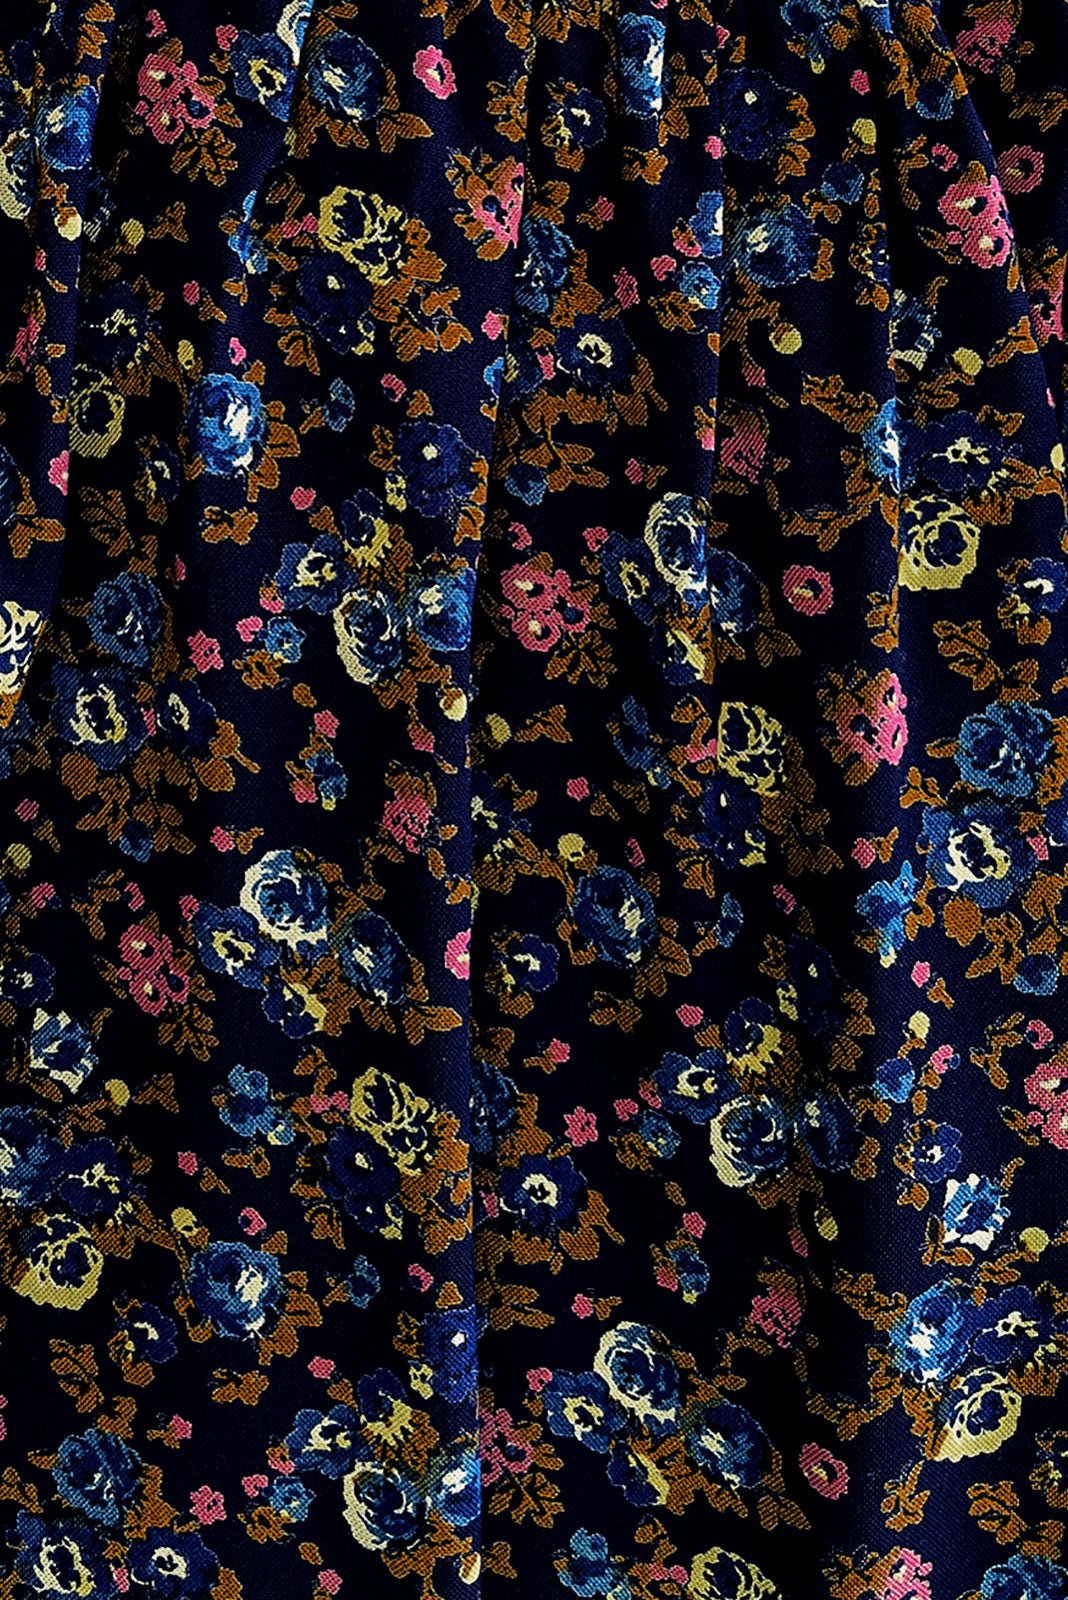 Fabric Swatch of Mariette Melody Navy Dress featuring woven 100% rayon in navy base with sweet blue floral print.